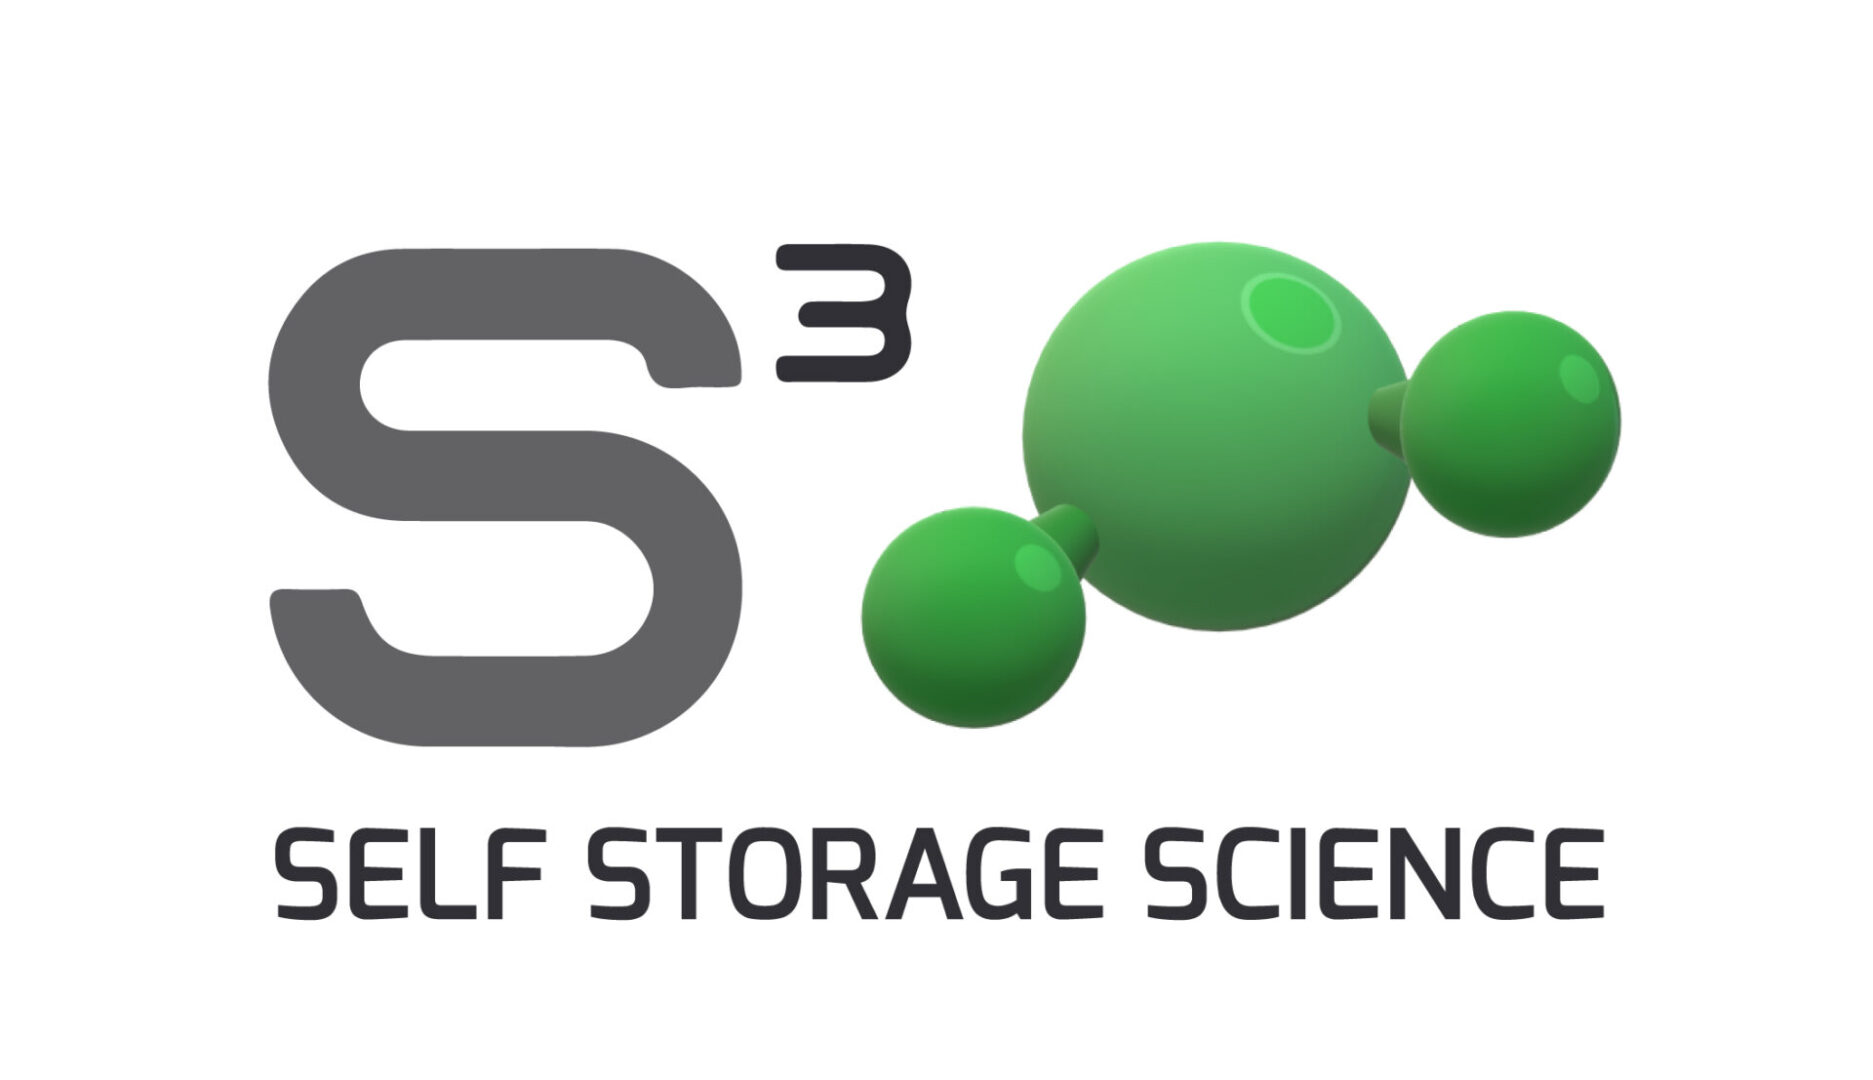 self-storage-science-logo-02-01 (1)